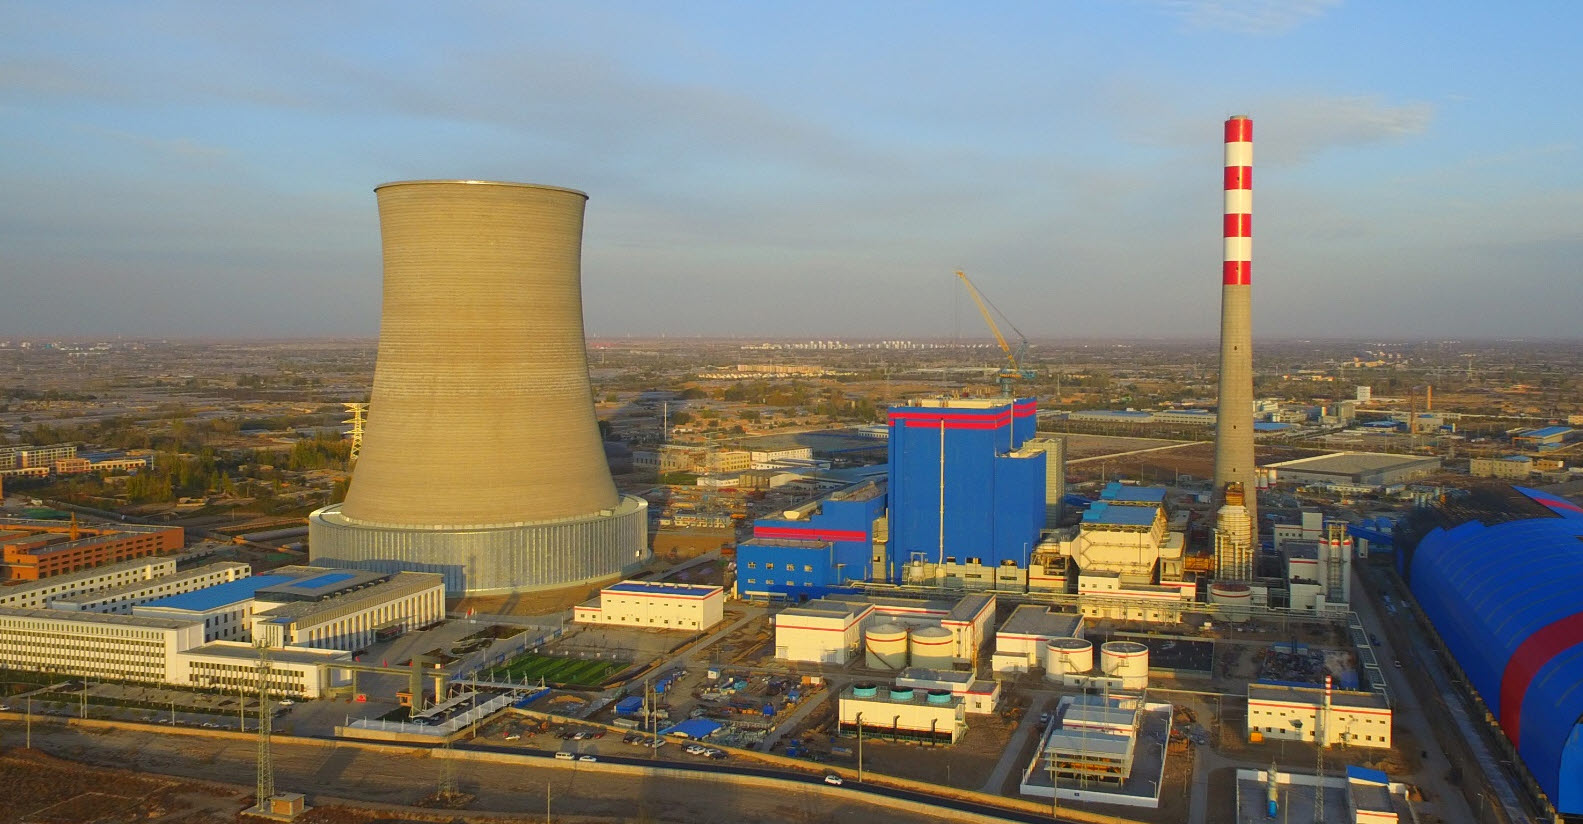 The whole view of Wuwei thermal power plant in Gansu Sheng, China